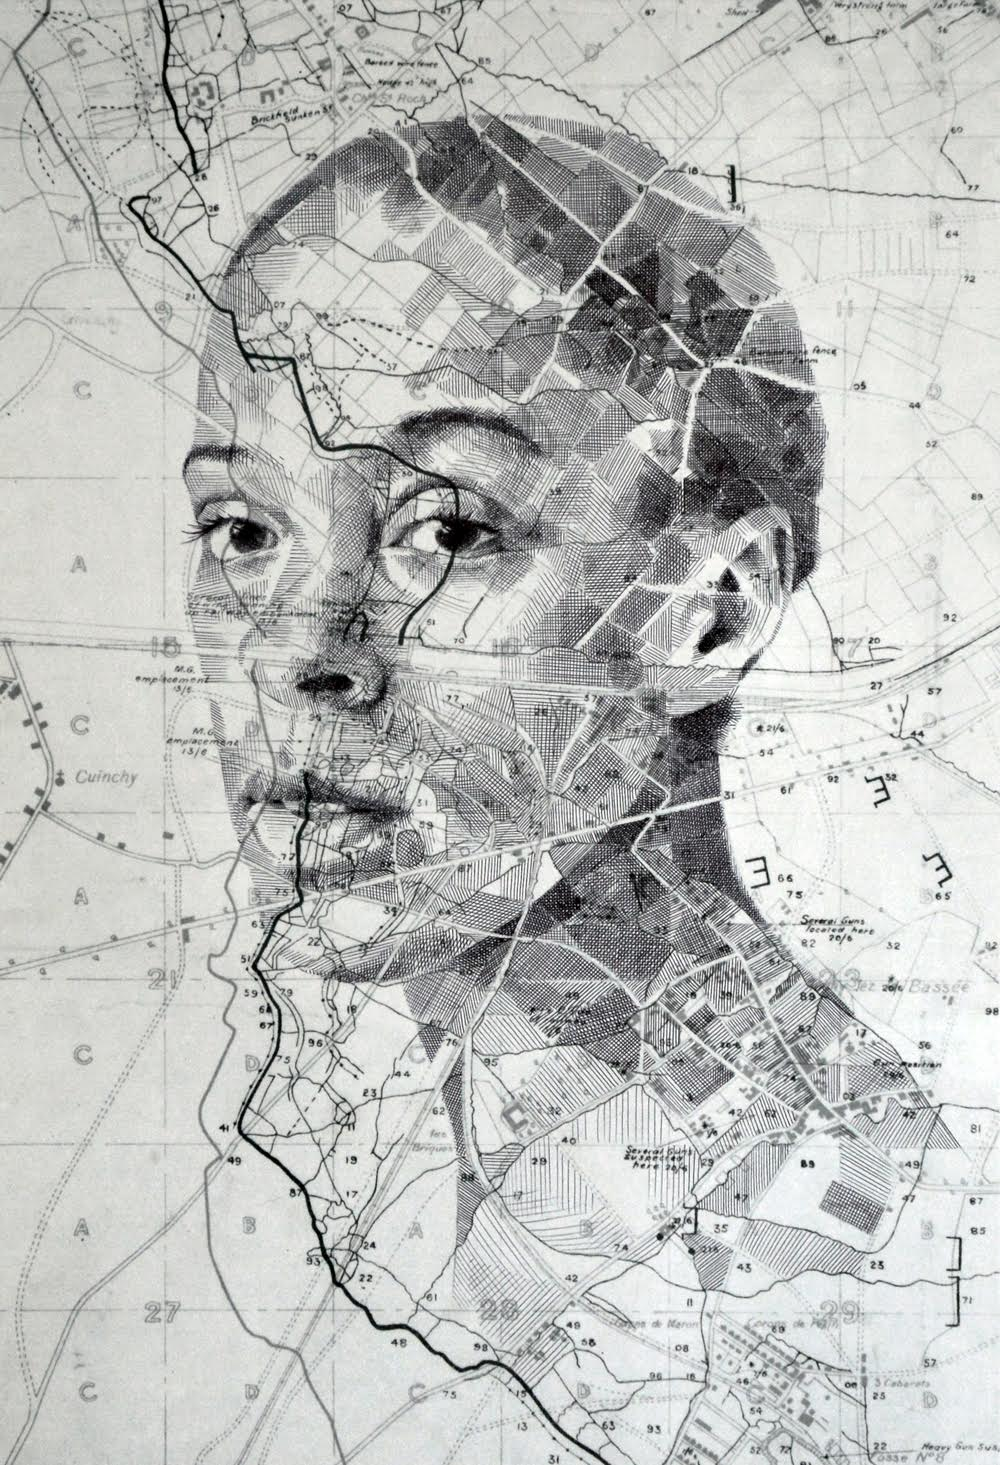 Drawn portrait vintage Maps New Fairburn and Colossal